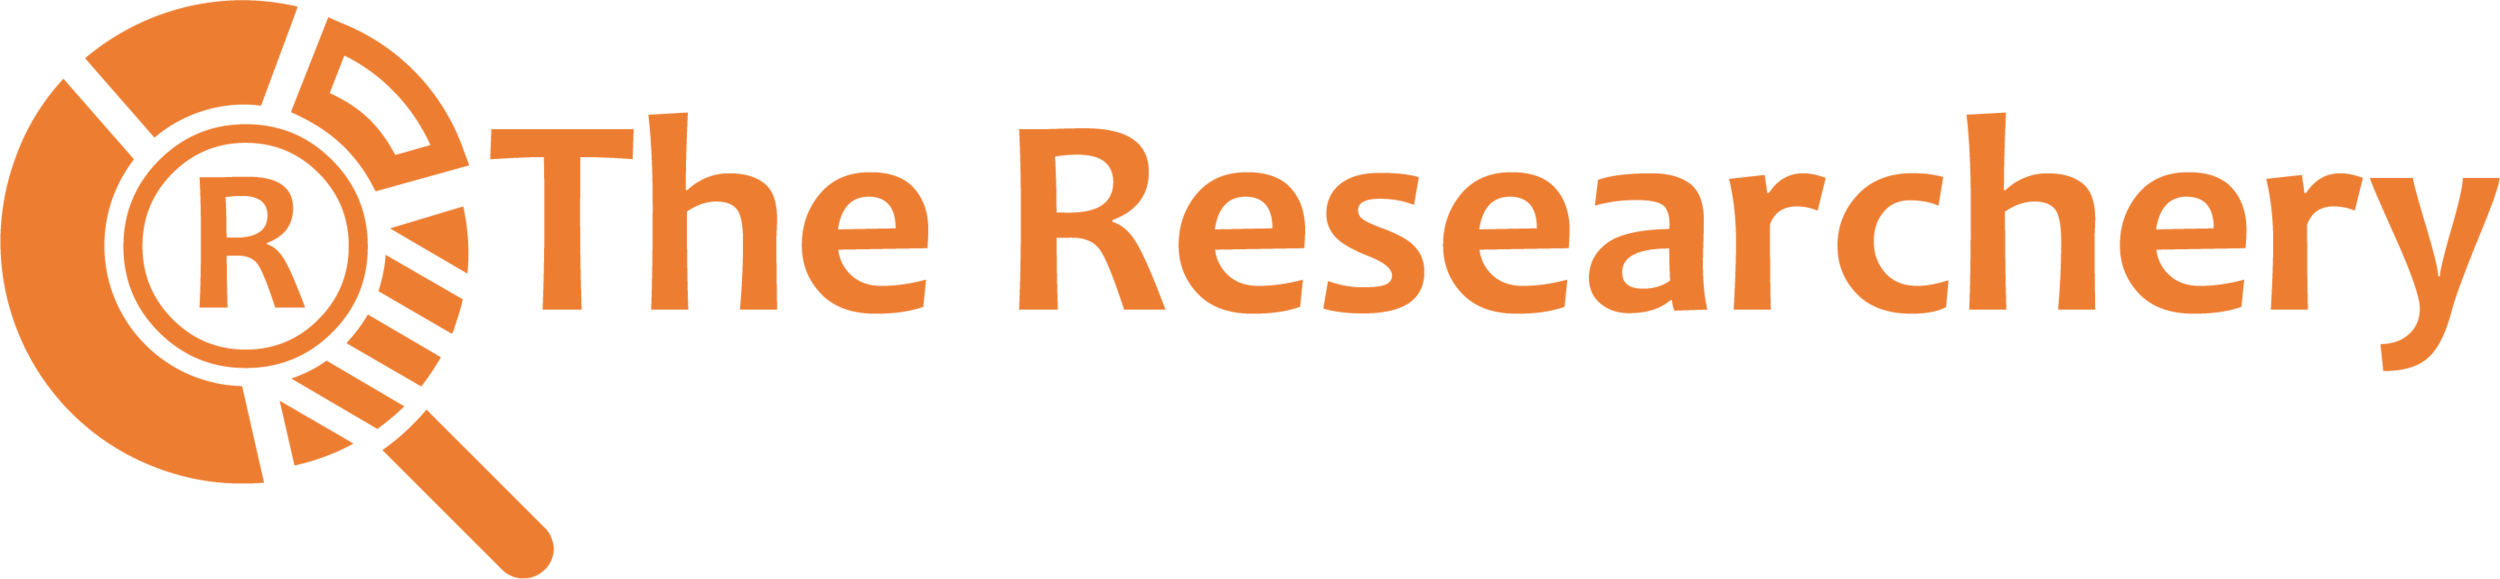 The Researchery logo.png